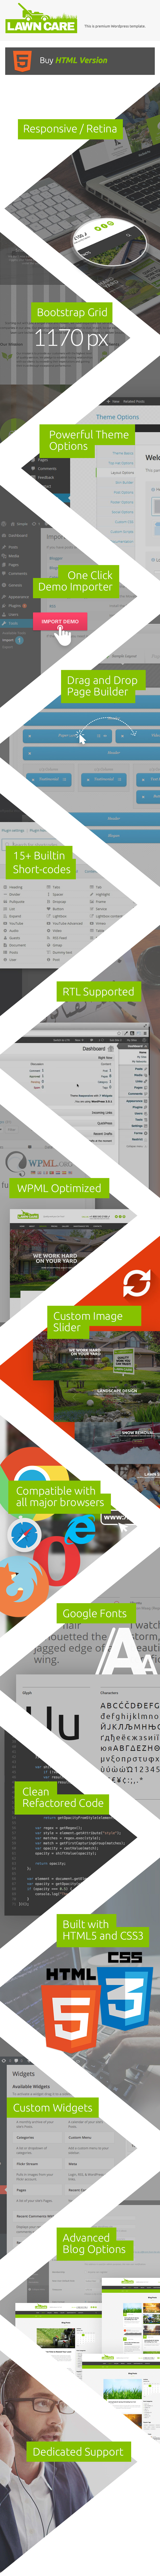 Lawn Care services - HTML template